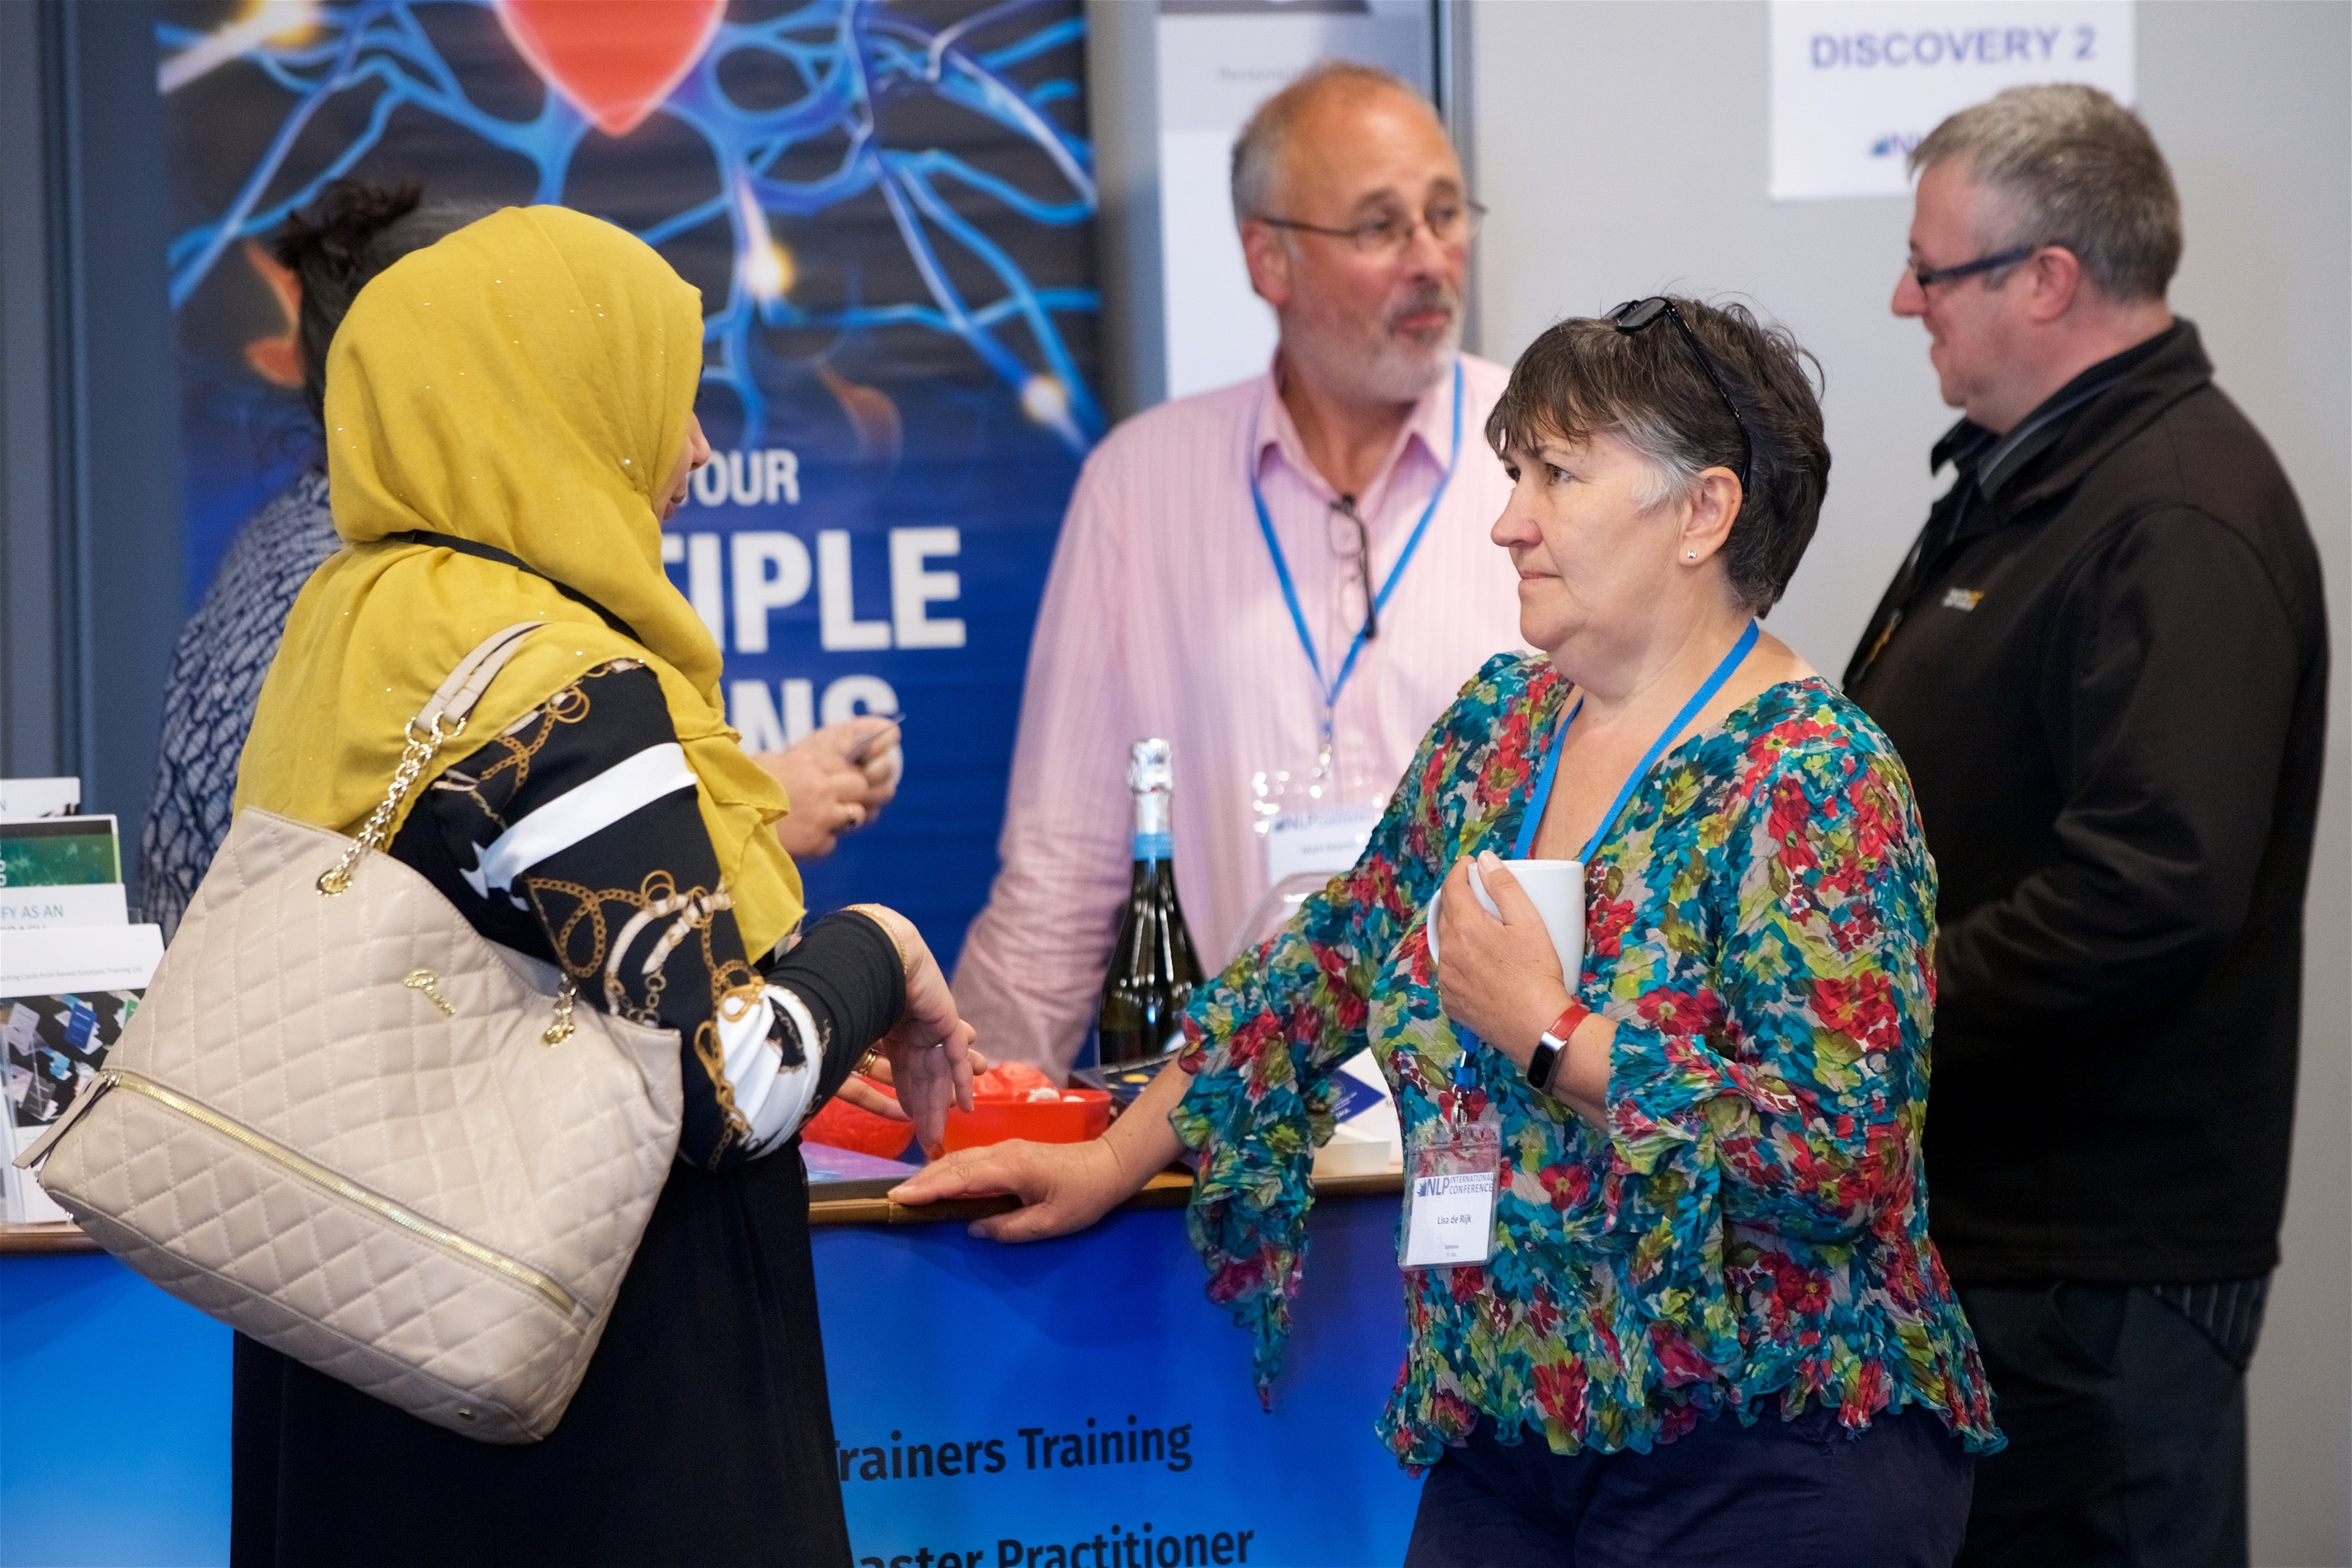 mBraining Exhibitor Stand